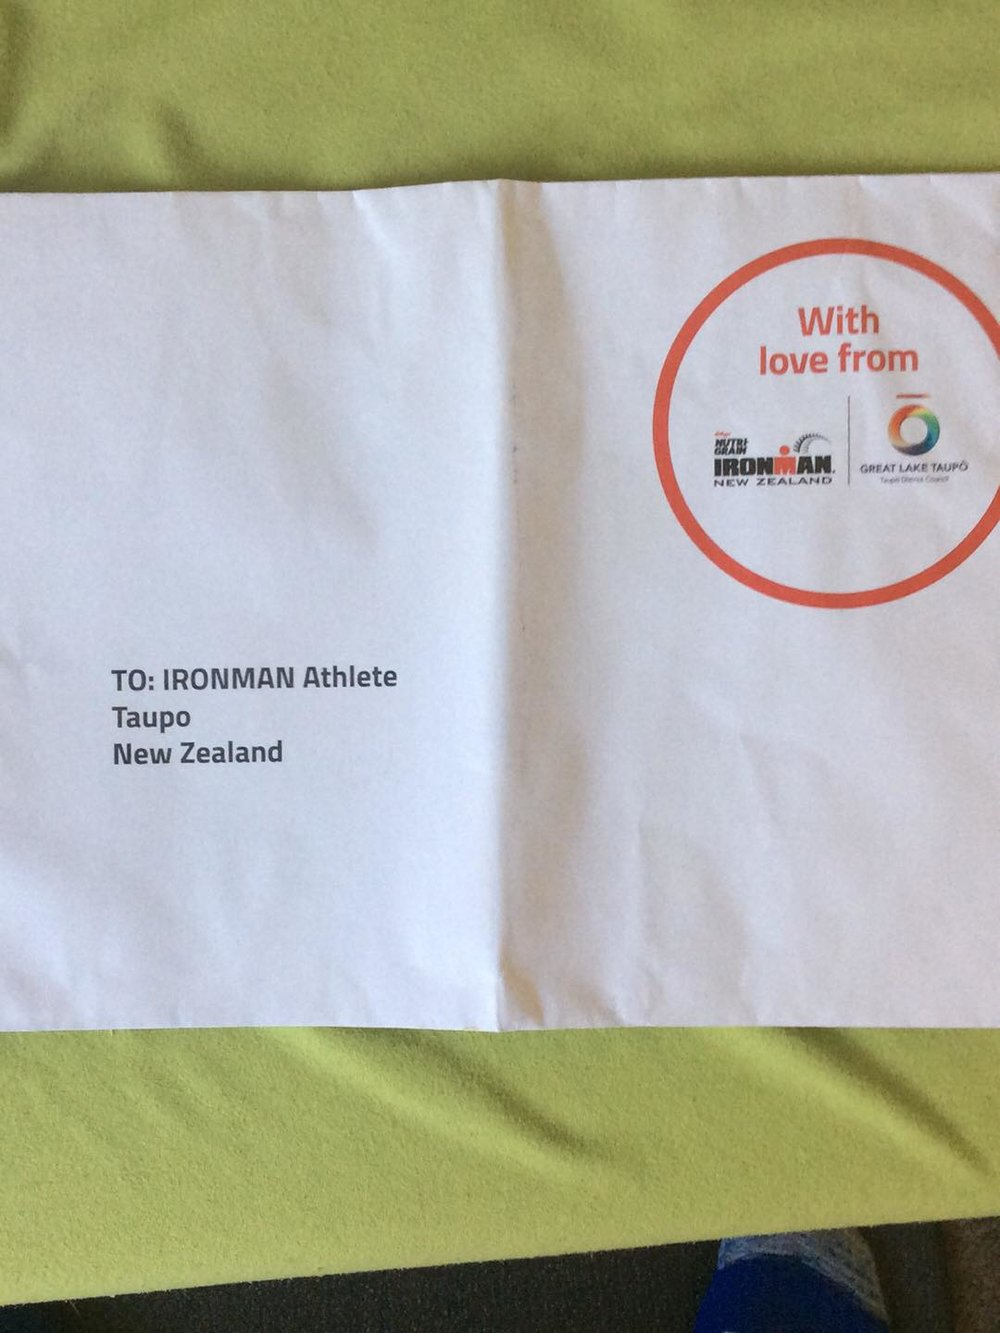 Envelope from Race